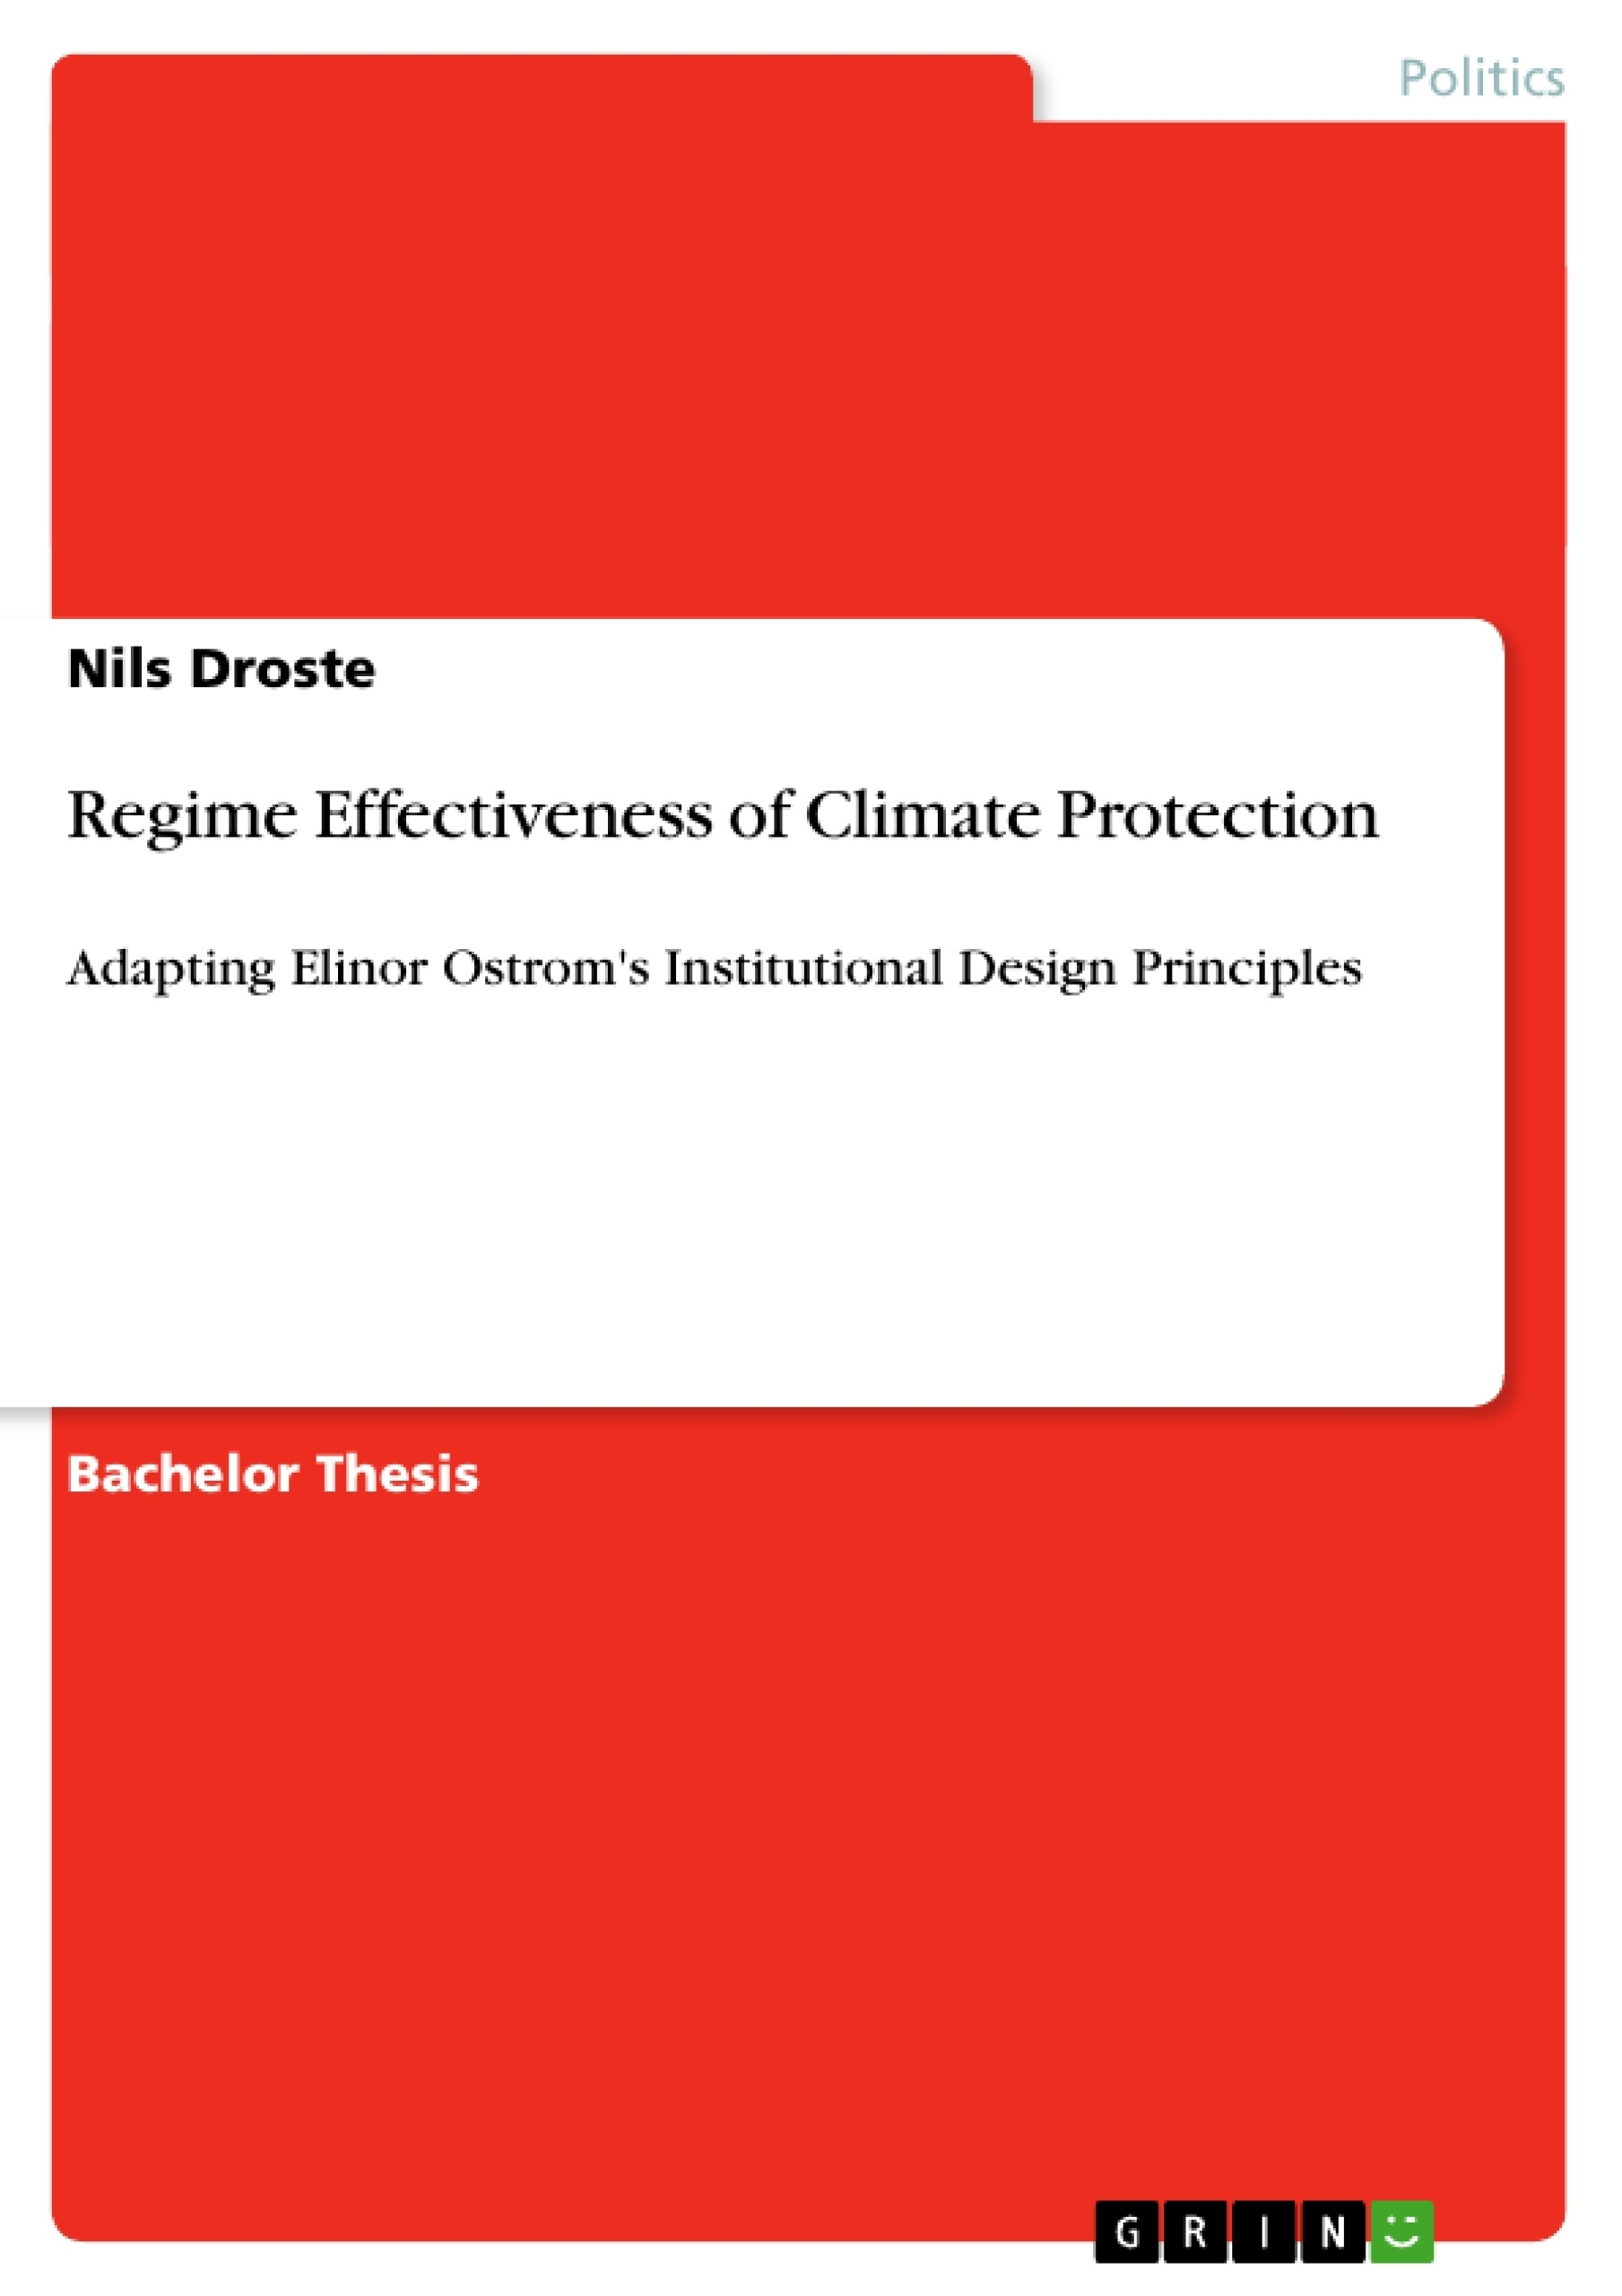 Title: Regime Effectiveness of Climate Protection